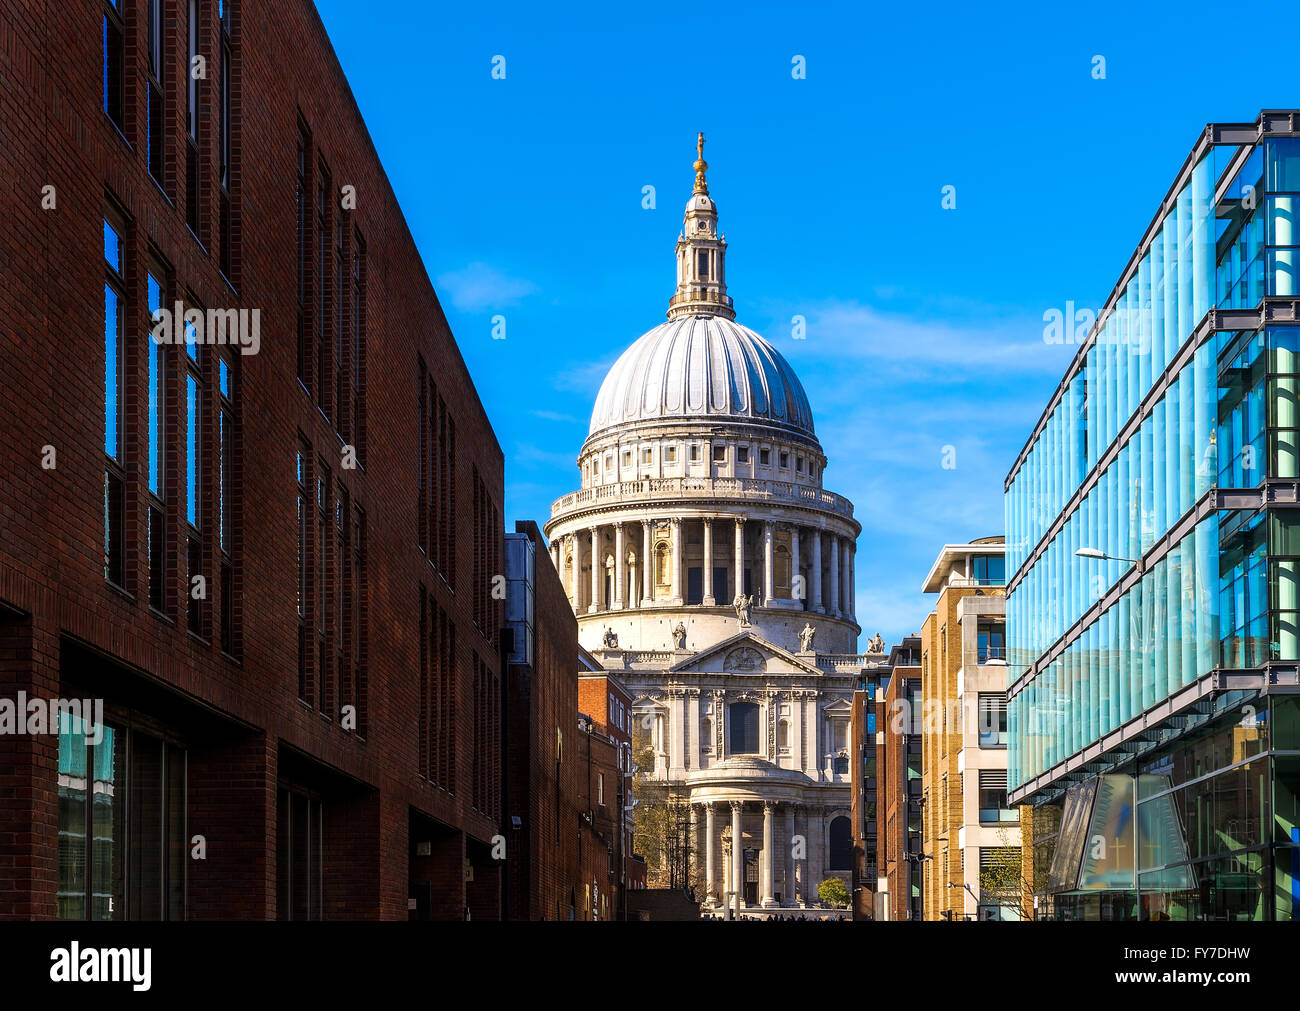 St Pauls Cathedral in London against a blue sky - Stock Image